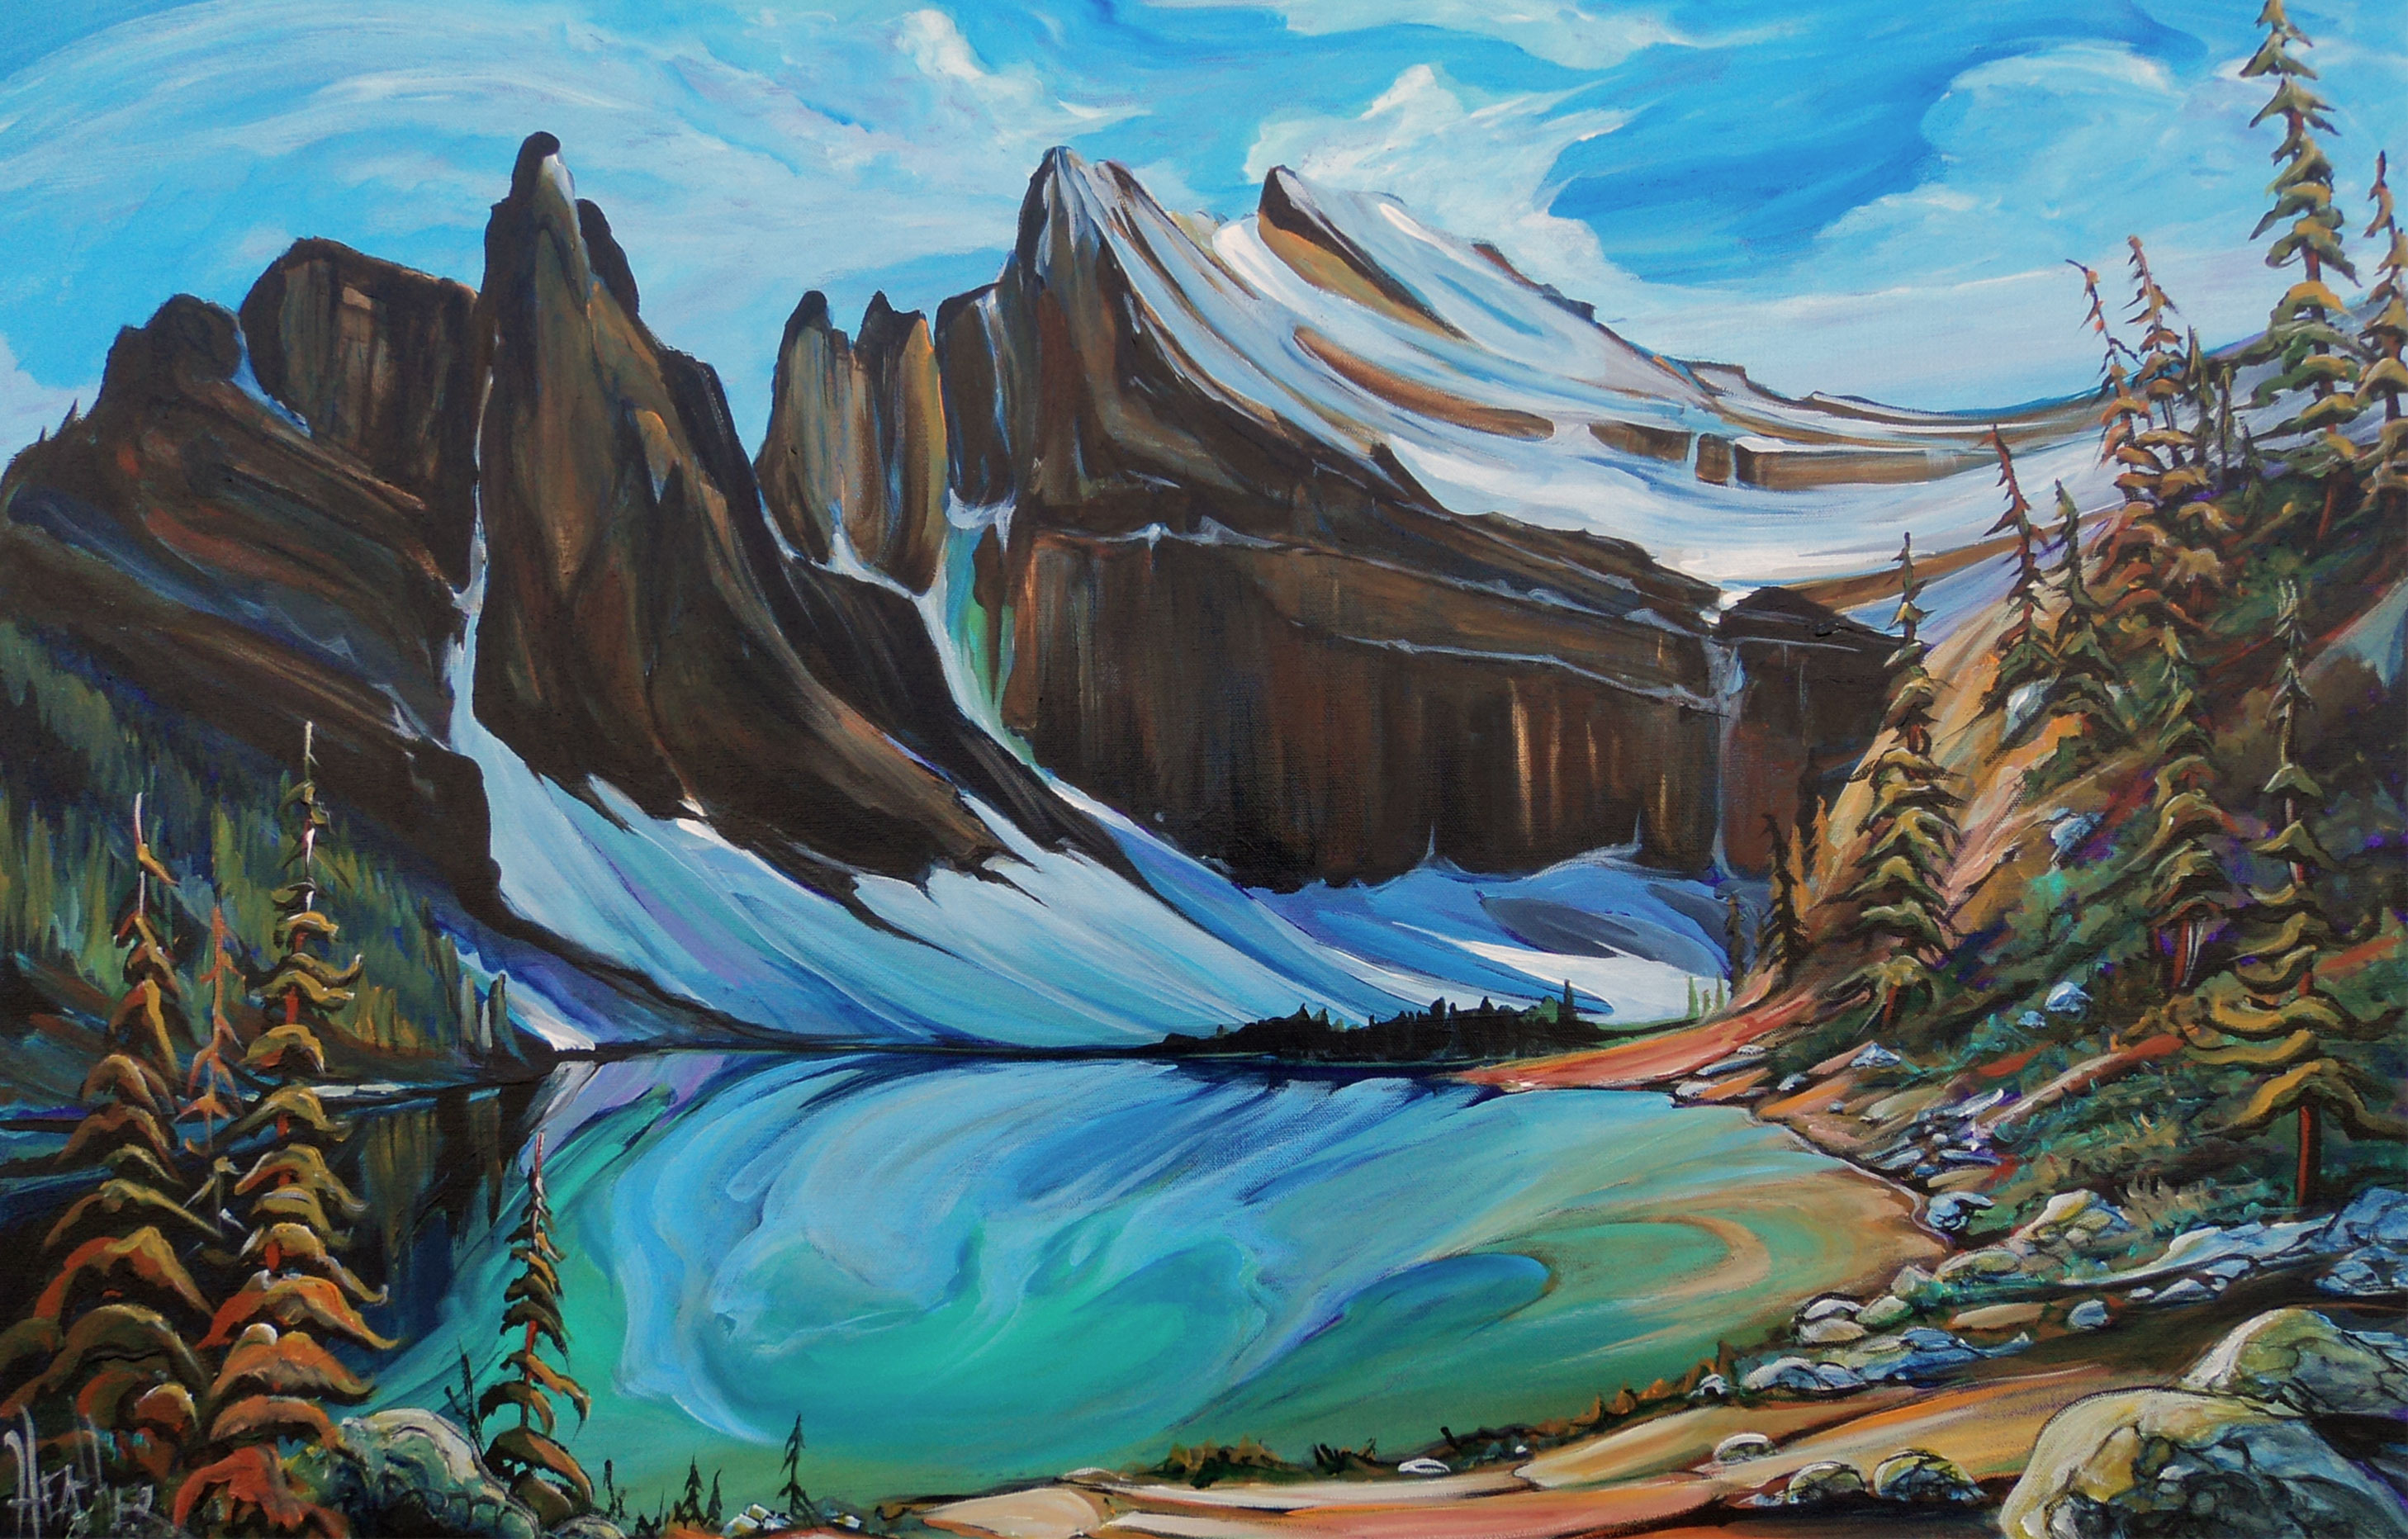 Lake Agnes Surreal 24 x 36